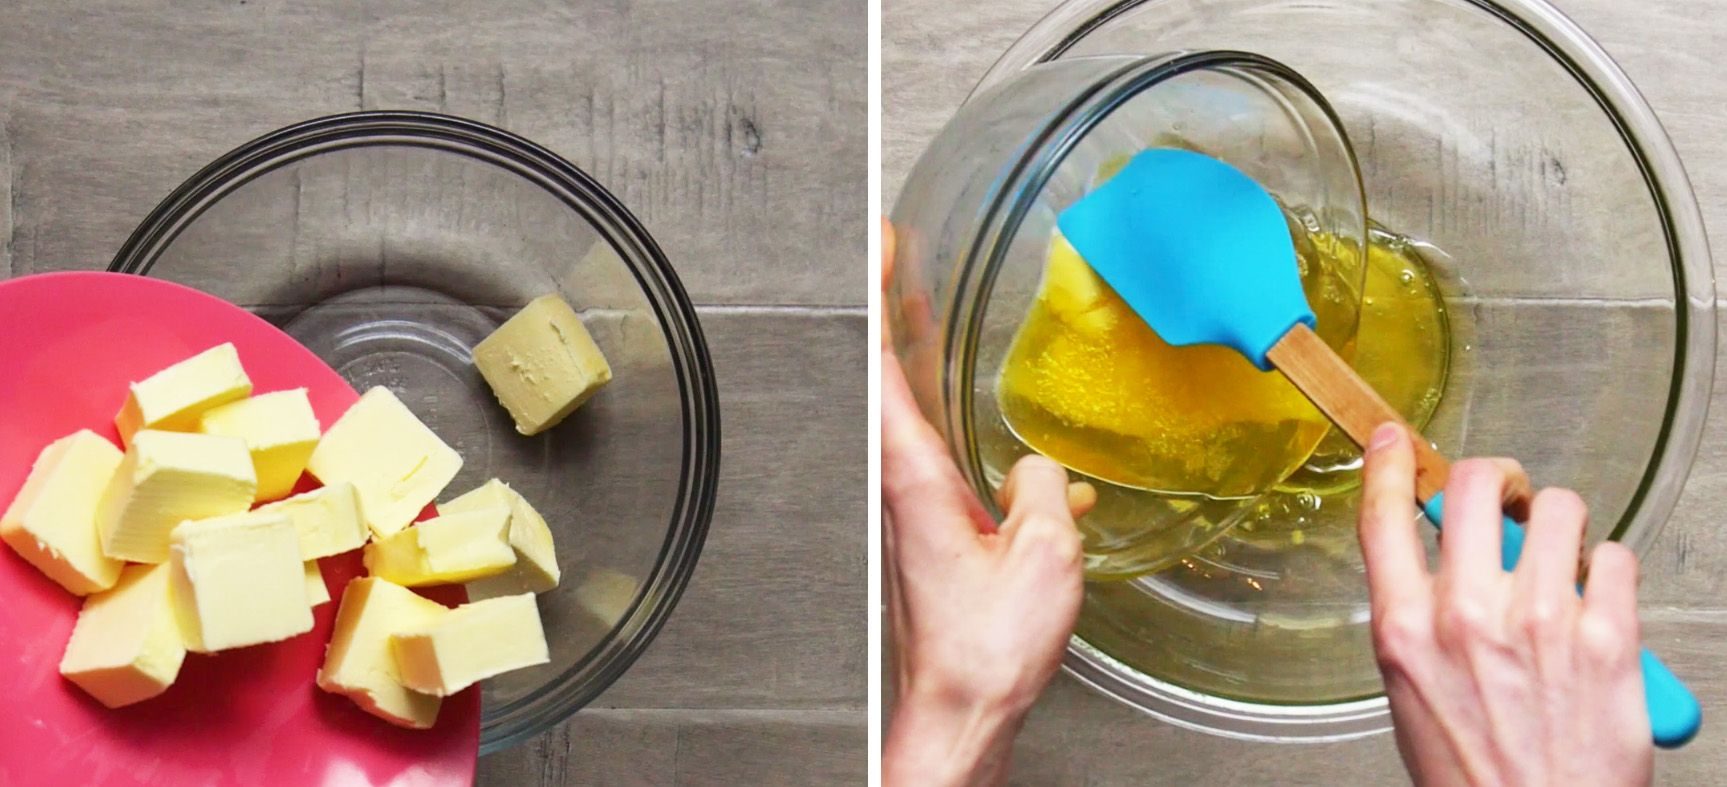 image may contain two photos side by side of cubes of butter and the second of half melted butter being scraped into a glass bowl